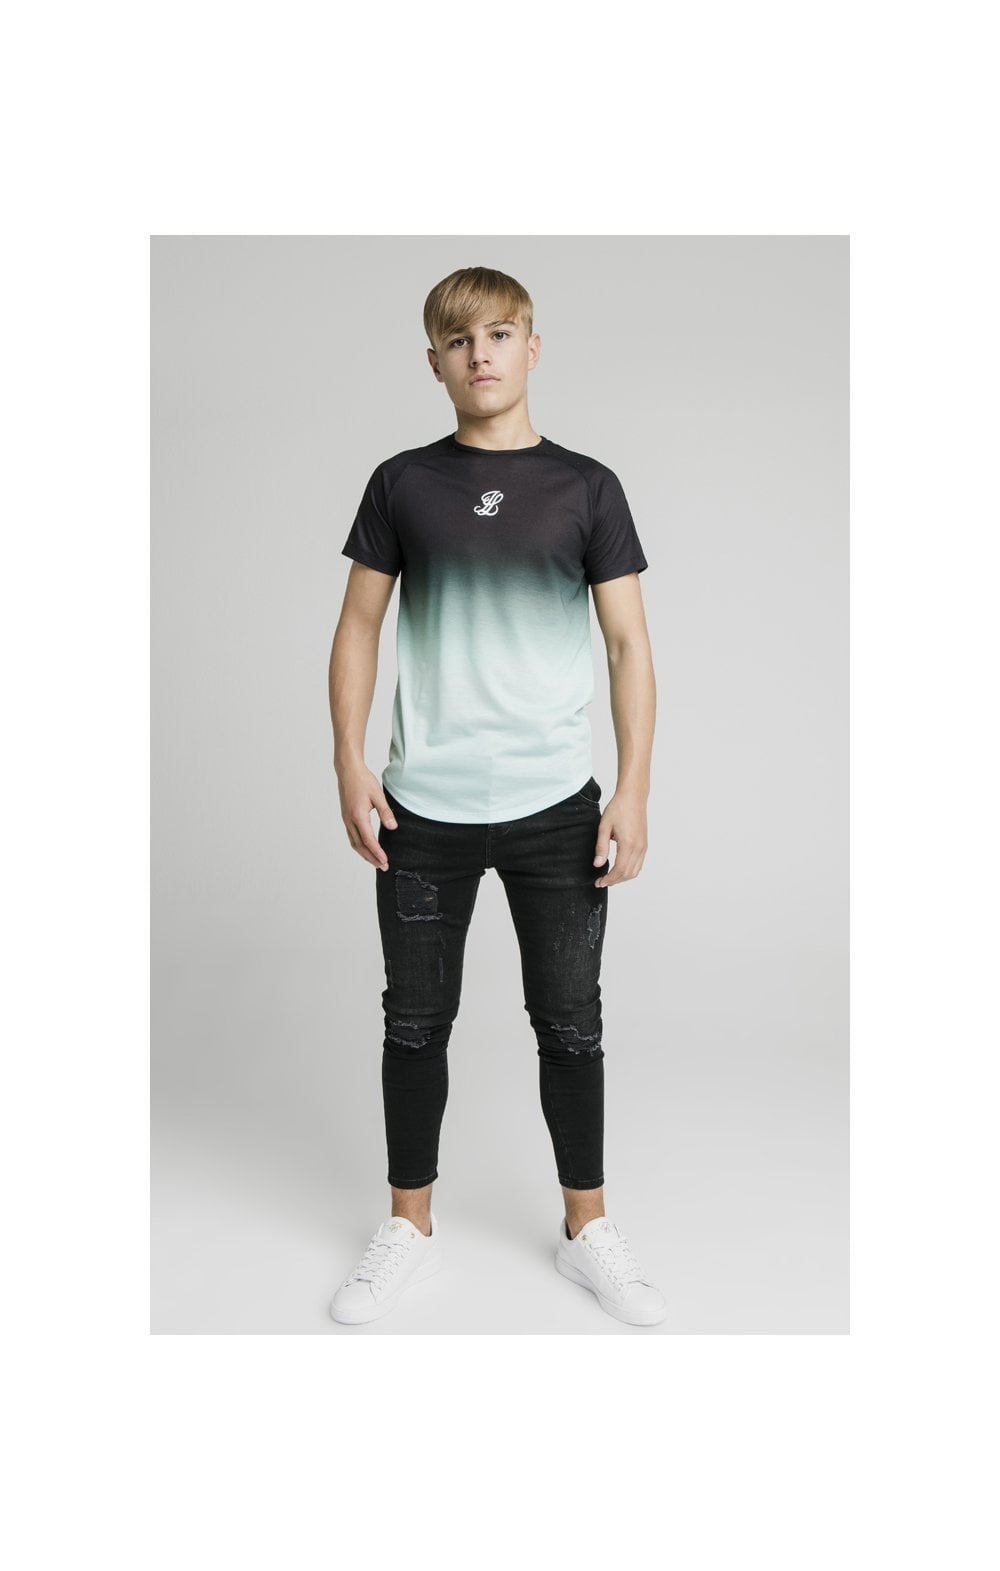 Illusive London Tape Fade Logo Tee - Black & Mint (4)